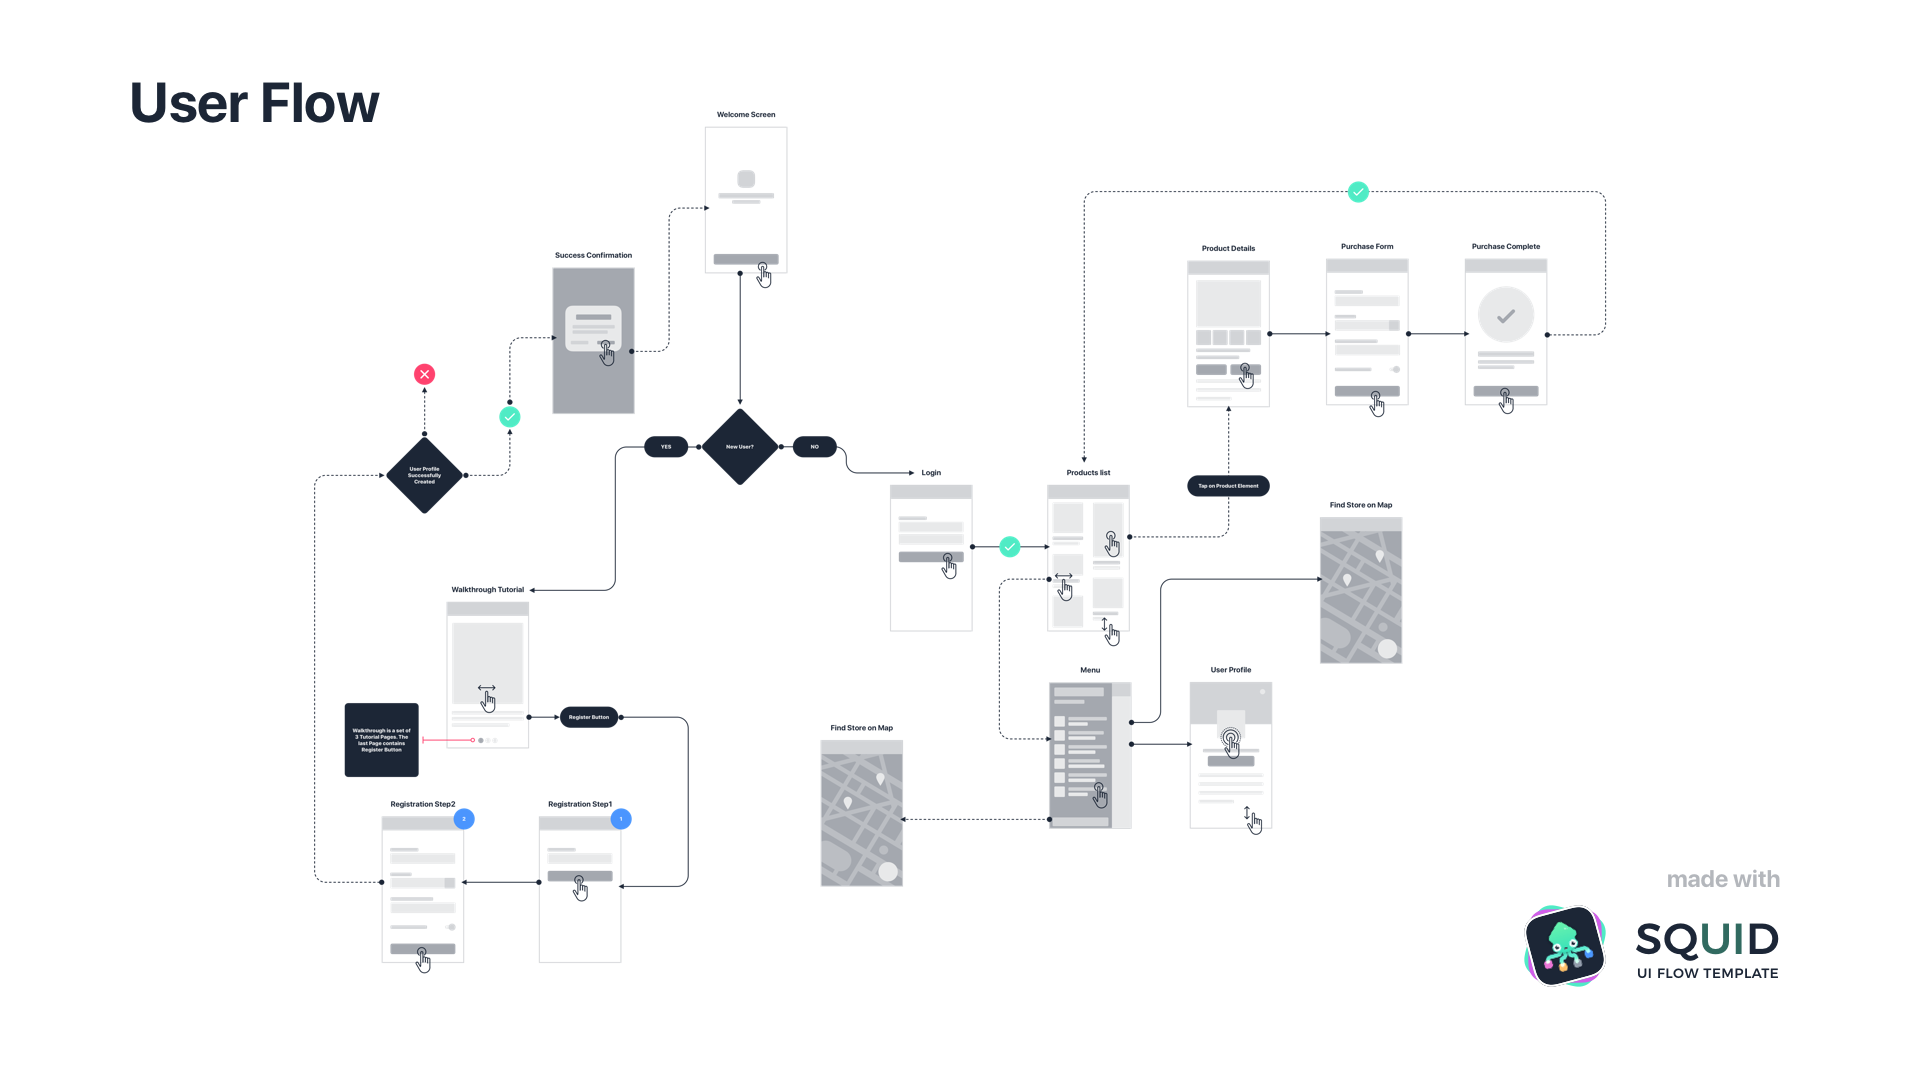 Image montrant un exemple de User Flow